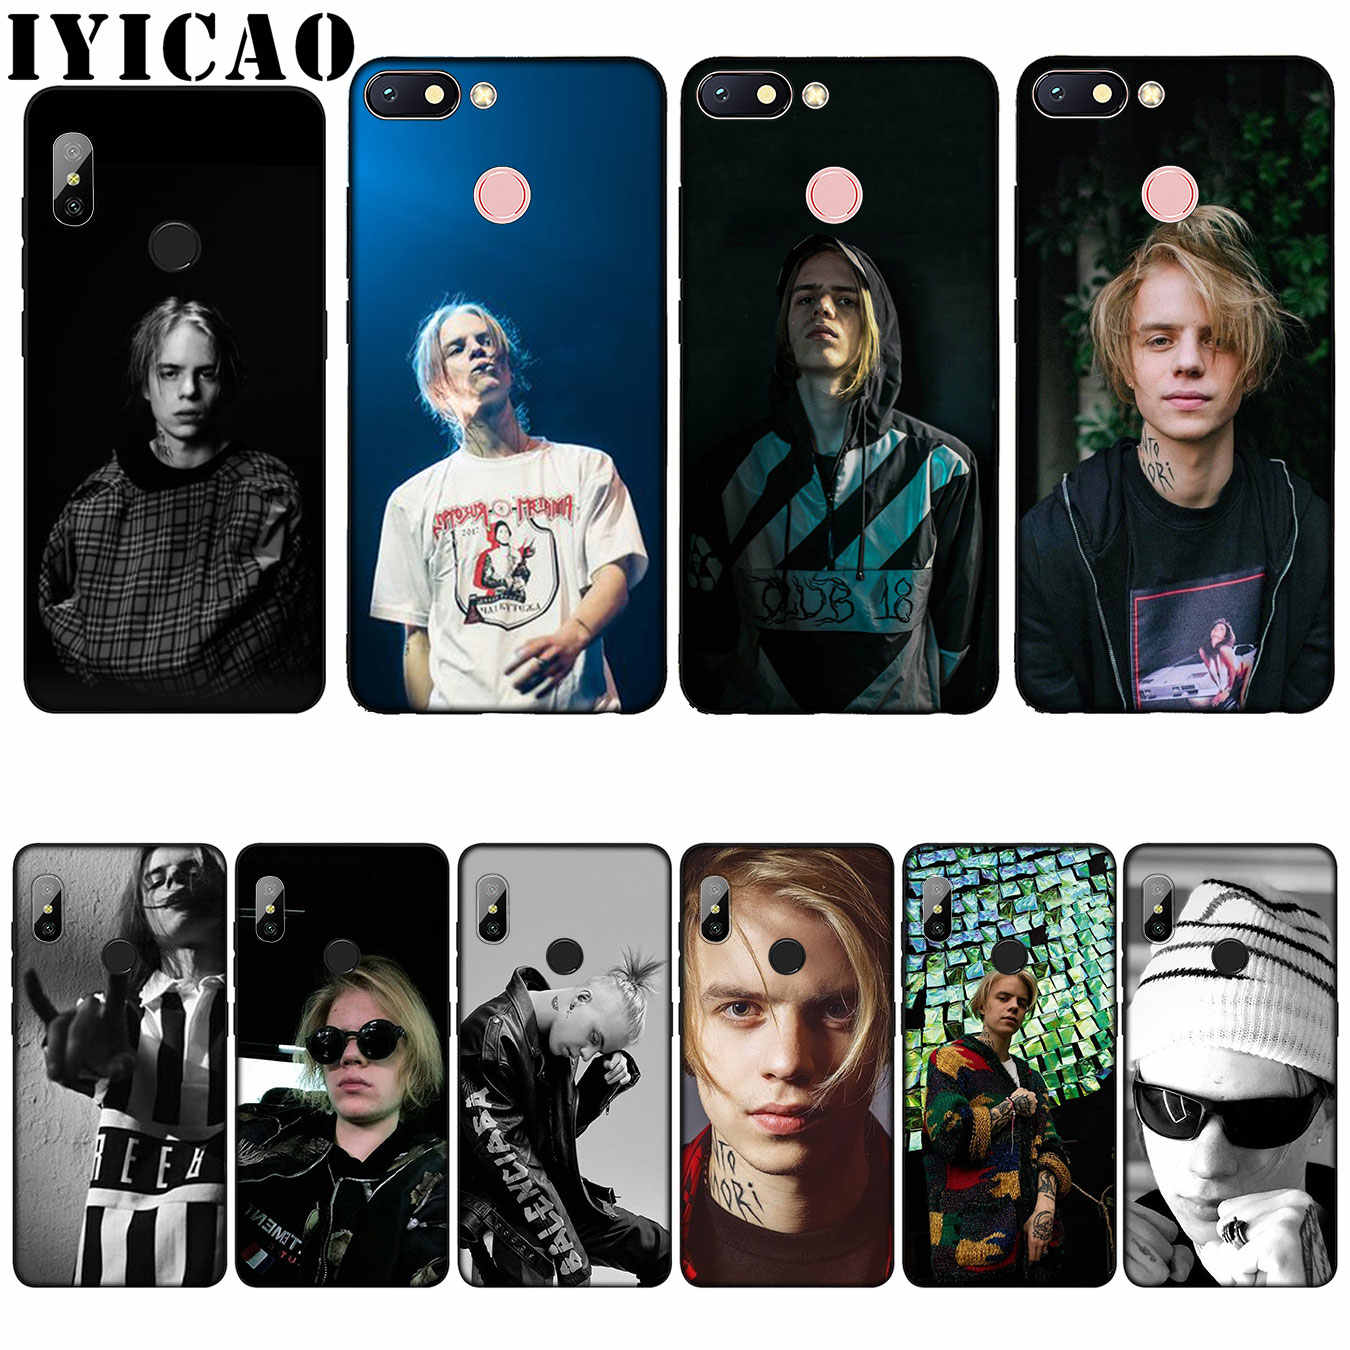 IYICAO Russia rapper Pharaoh Customer High Quality Silicone Soft Case for Xiaomi Redmi 6A 5A Note 7 4 4X 5 Plus 6 Pro Cover